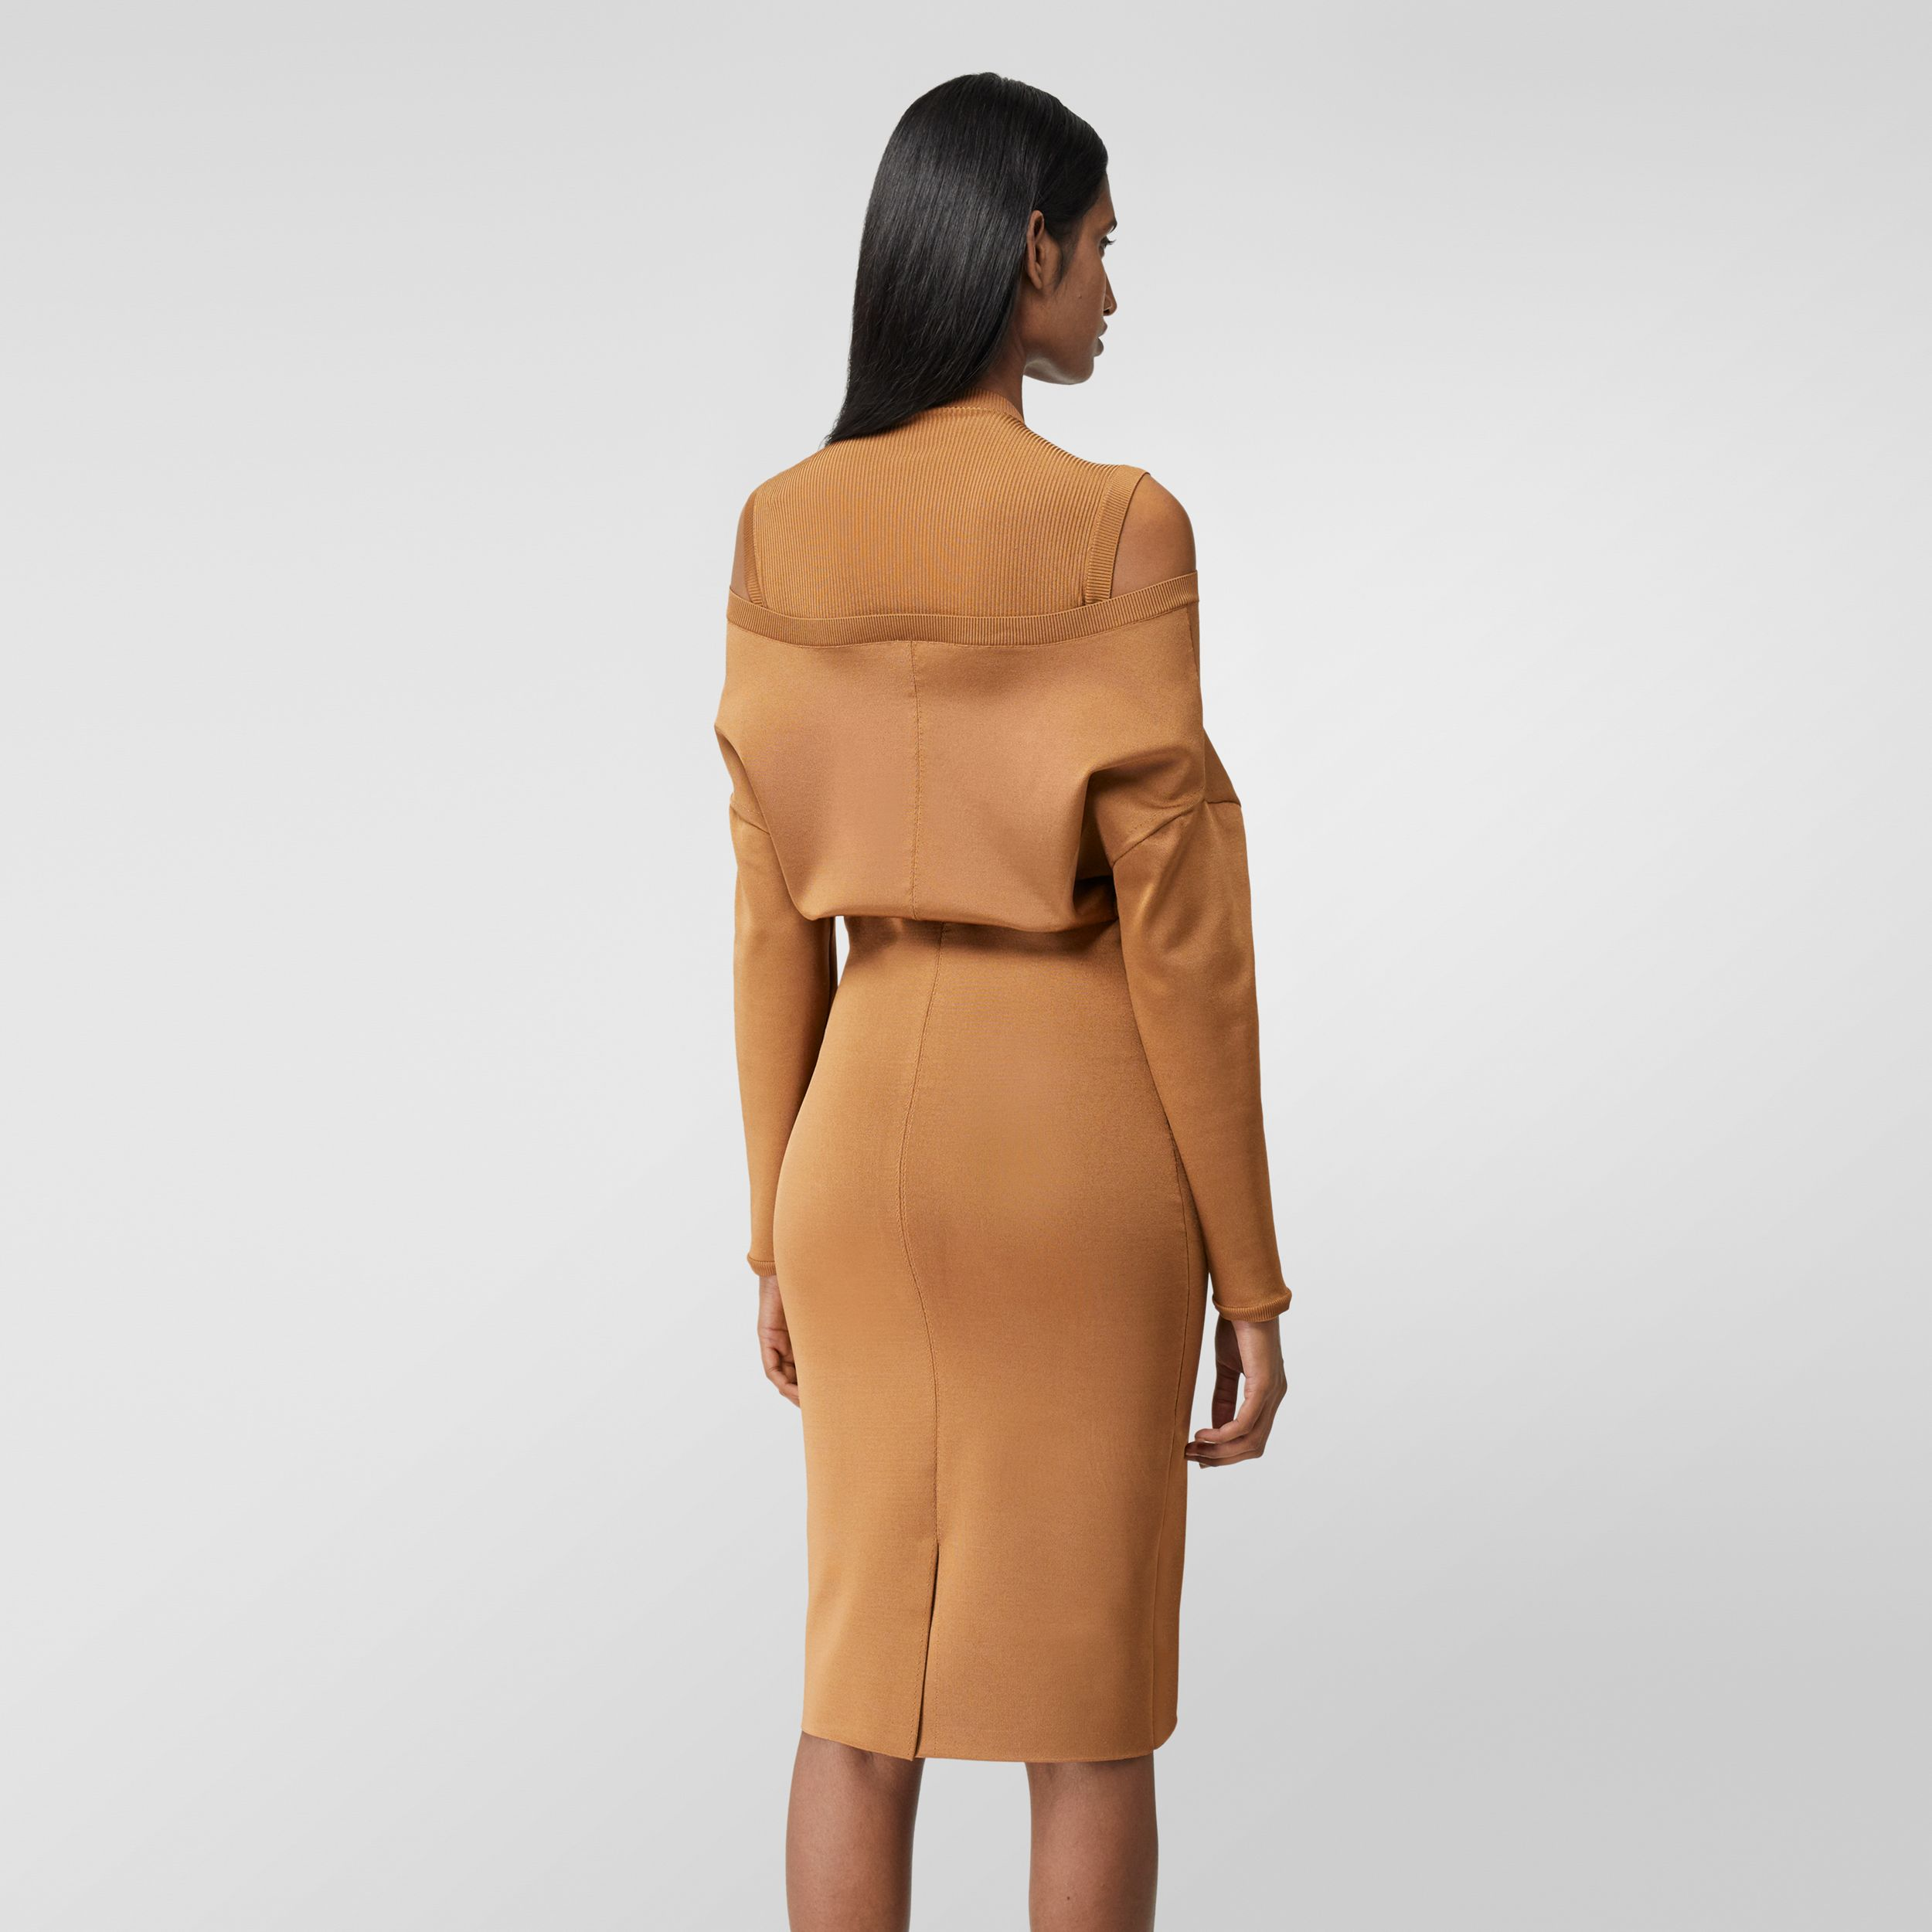 Long-sleeve Cut-out Detail Knitted Dress in Camel - Women | Burberry - 3